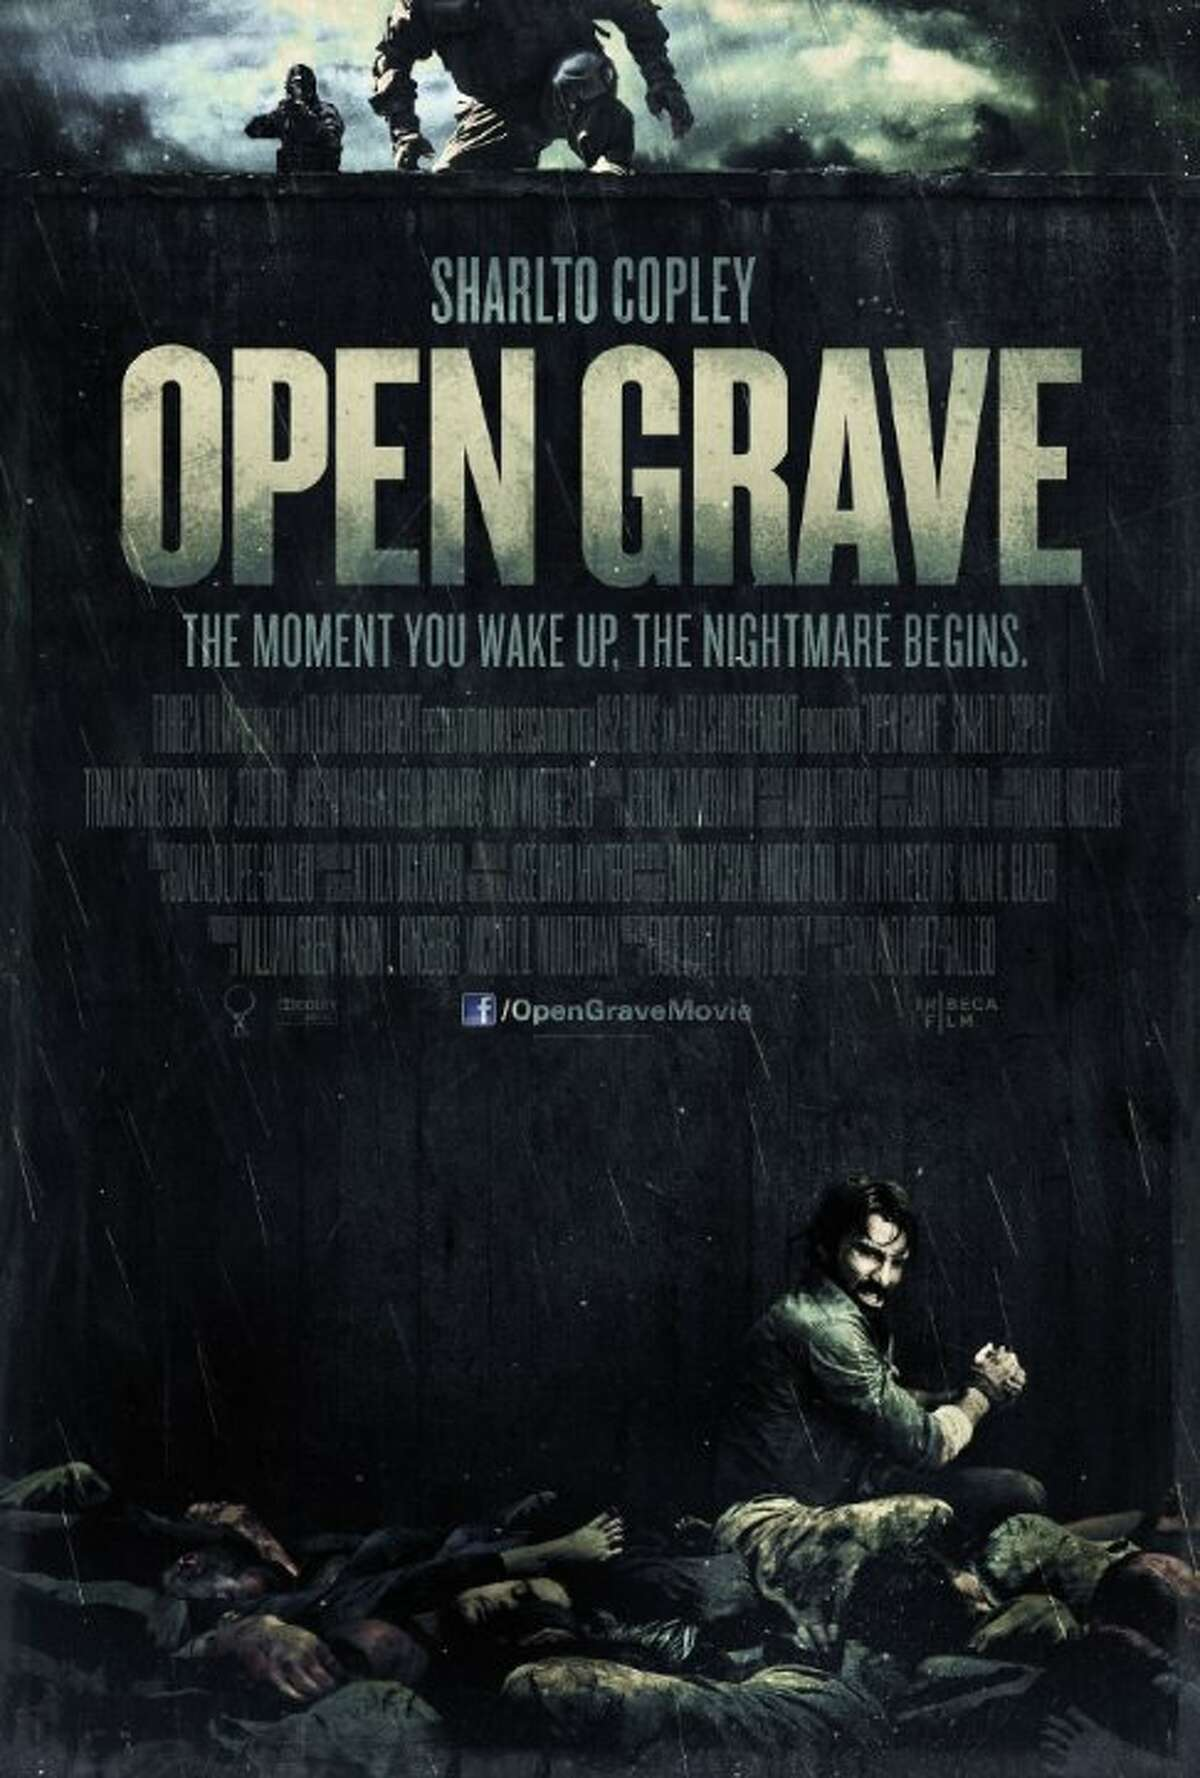 Open Grave Starring:Sharlto Copley, Joseph Morgan, Thomas Kretschmann Release date: Jan. 3 A man (Sharlto Copley, DISTRICT 9, ELYSIUM) wakes up in a pit of dead bodies with no memory of who he is or how he got there. Fleeing the scene, he breaks into a nearby house and is met at gunpoint by a group of terrified strangers, all suffering from memory loss. Suspicion gives way to violence as the group starts to piece together clues about their identities, but when they uncover a threat that's more vicious -- and hungry -- than each other, they are forced to figure out what brought them all together -- before it's too late.